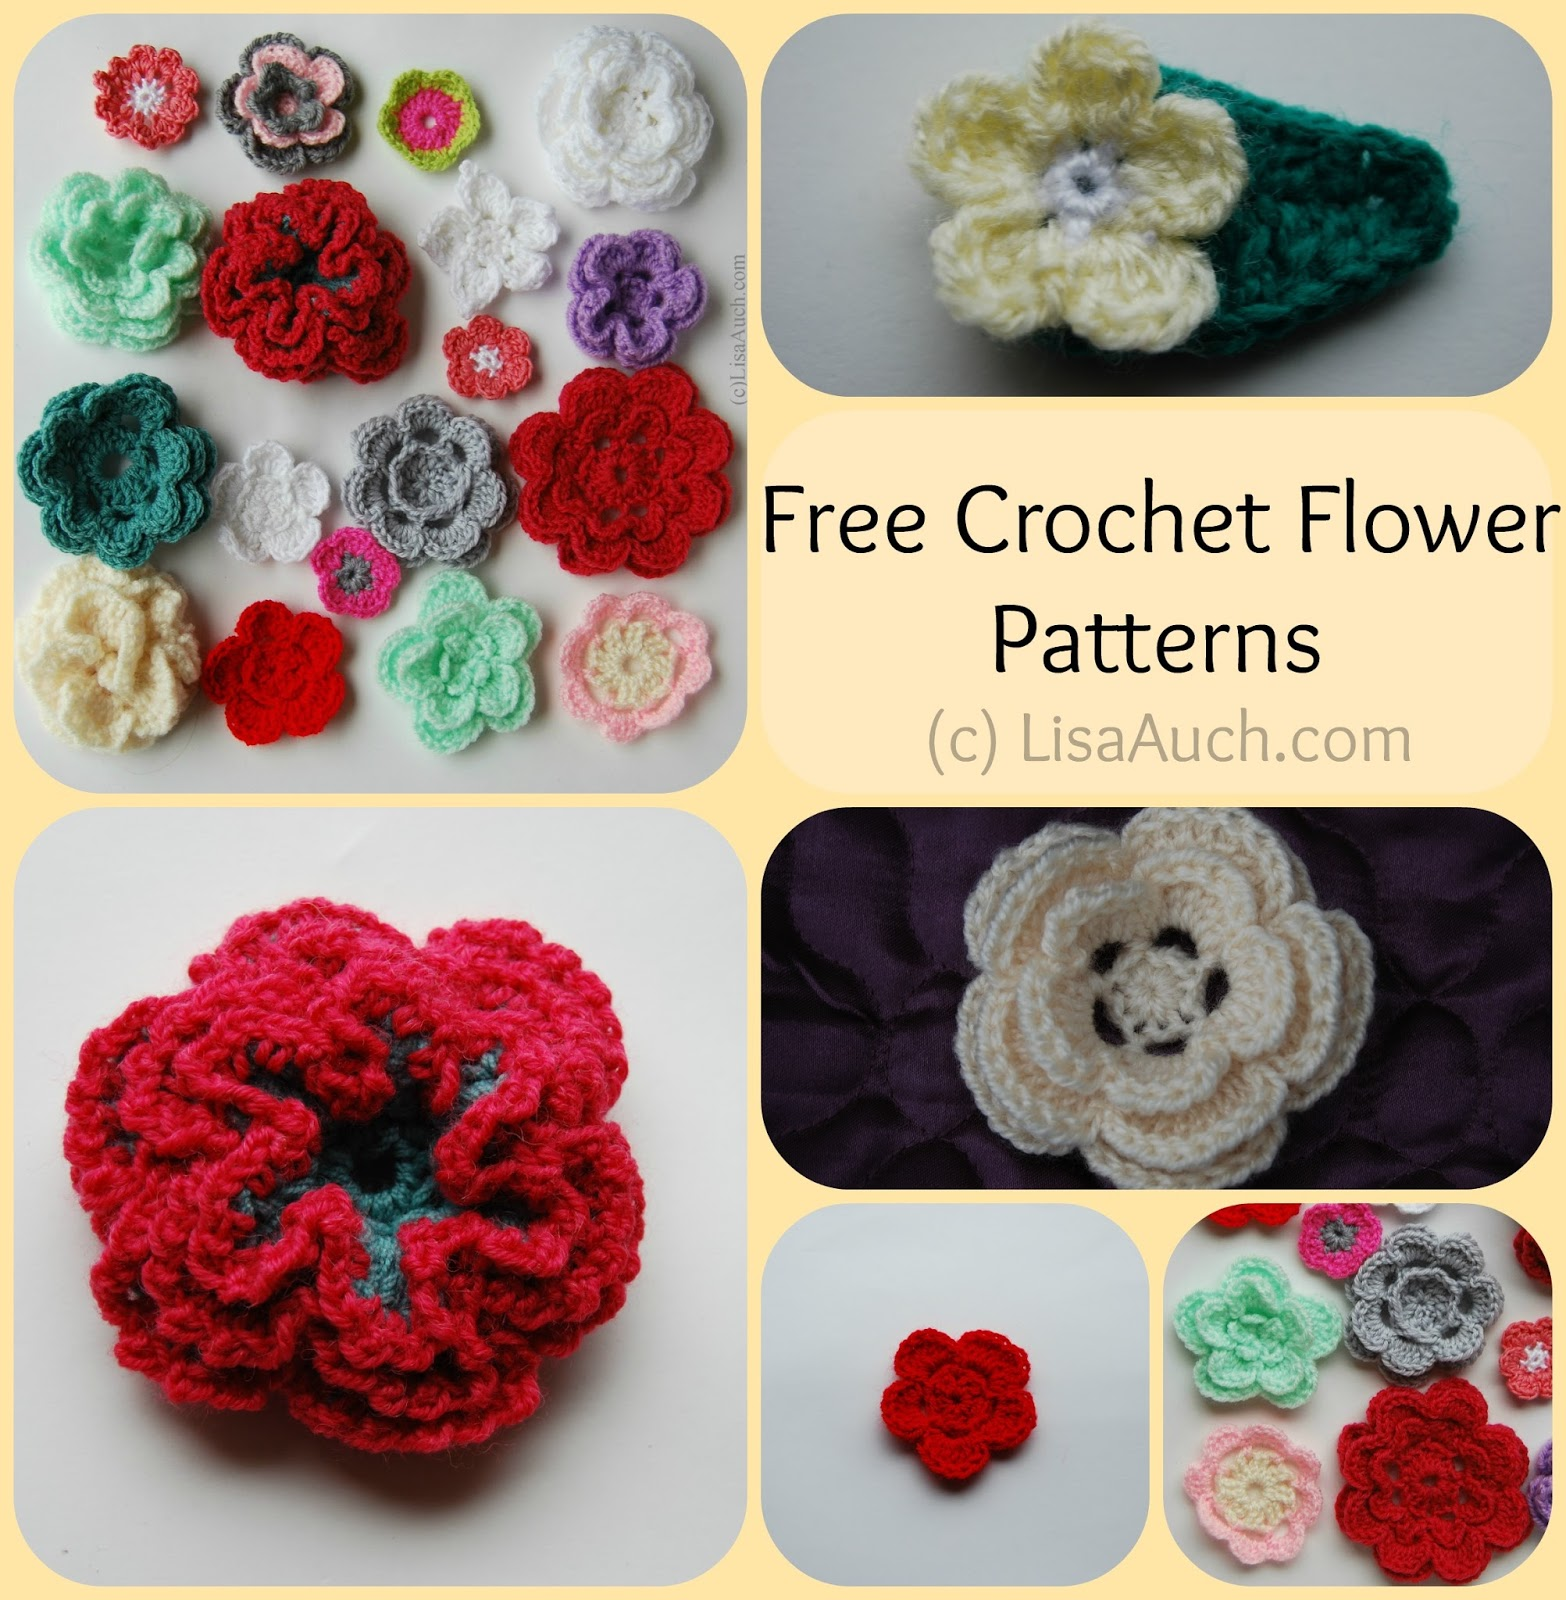 Free Crochet Flower Patterns : how to crochet a flower-crochet rose free crochet flower patterns